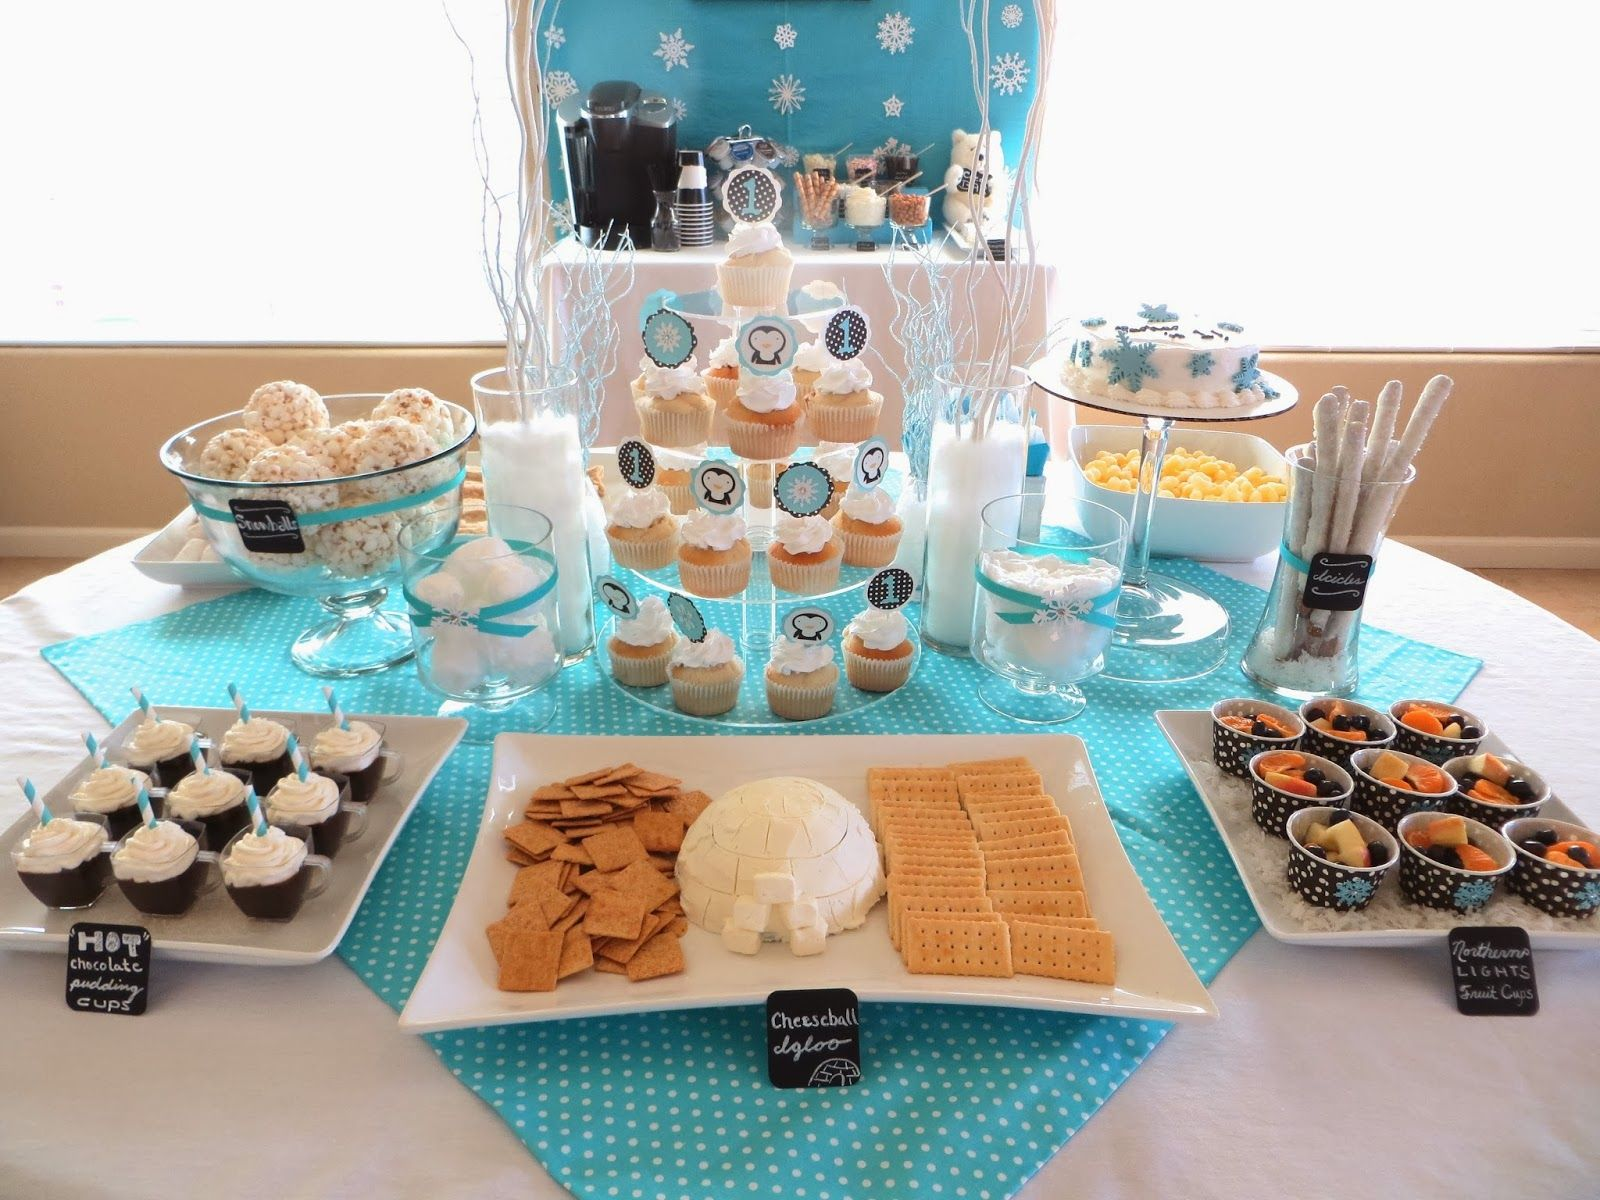 Winter Onederland ideas for party food, decorations